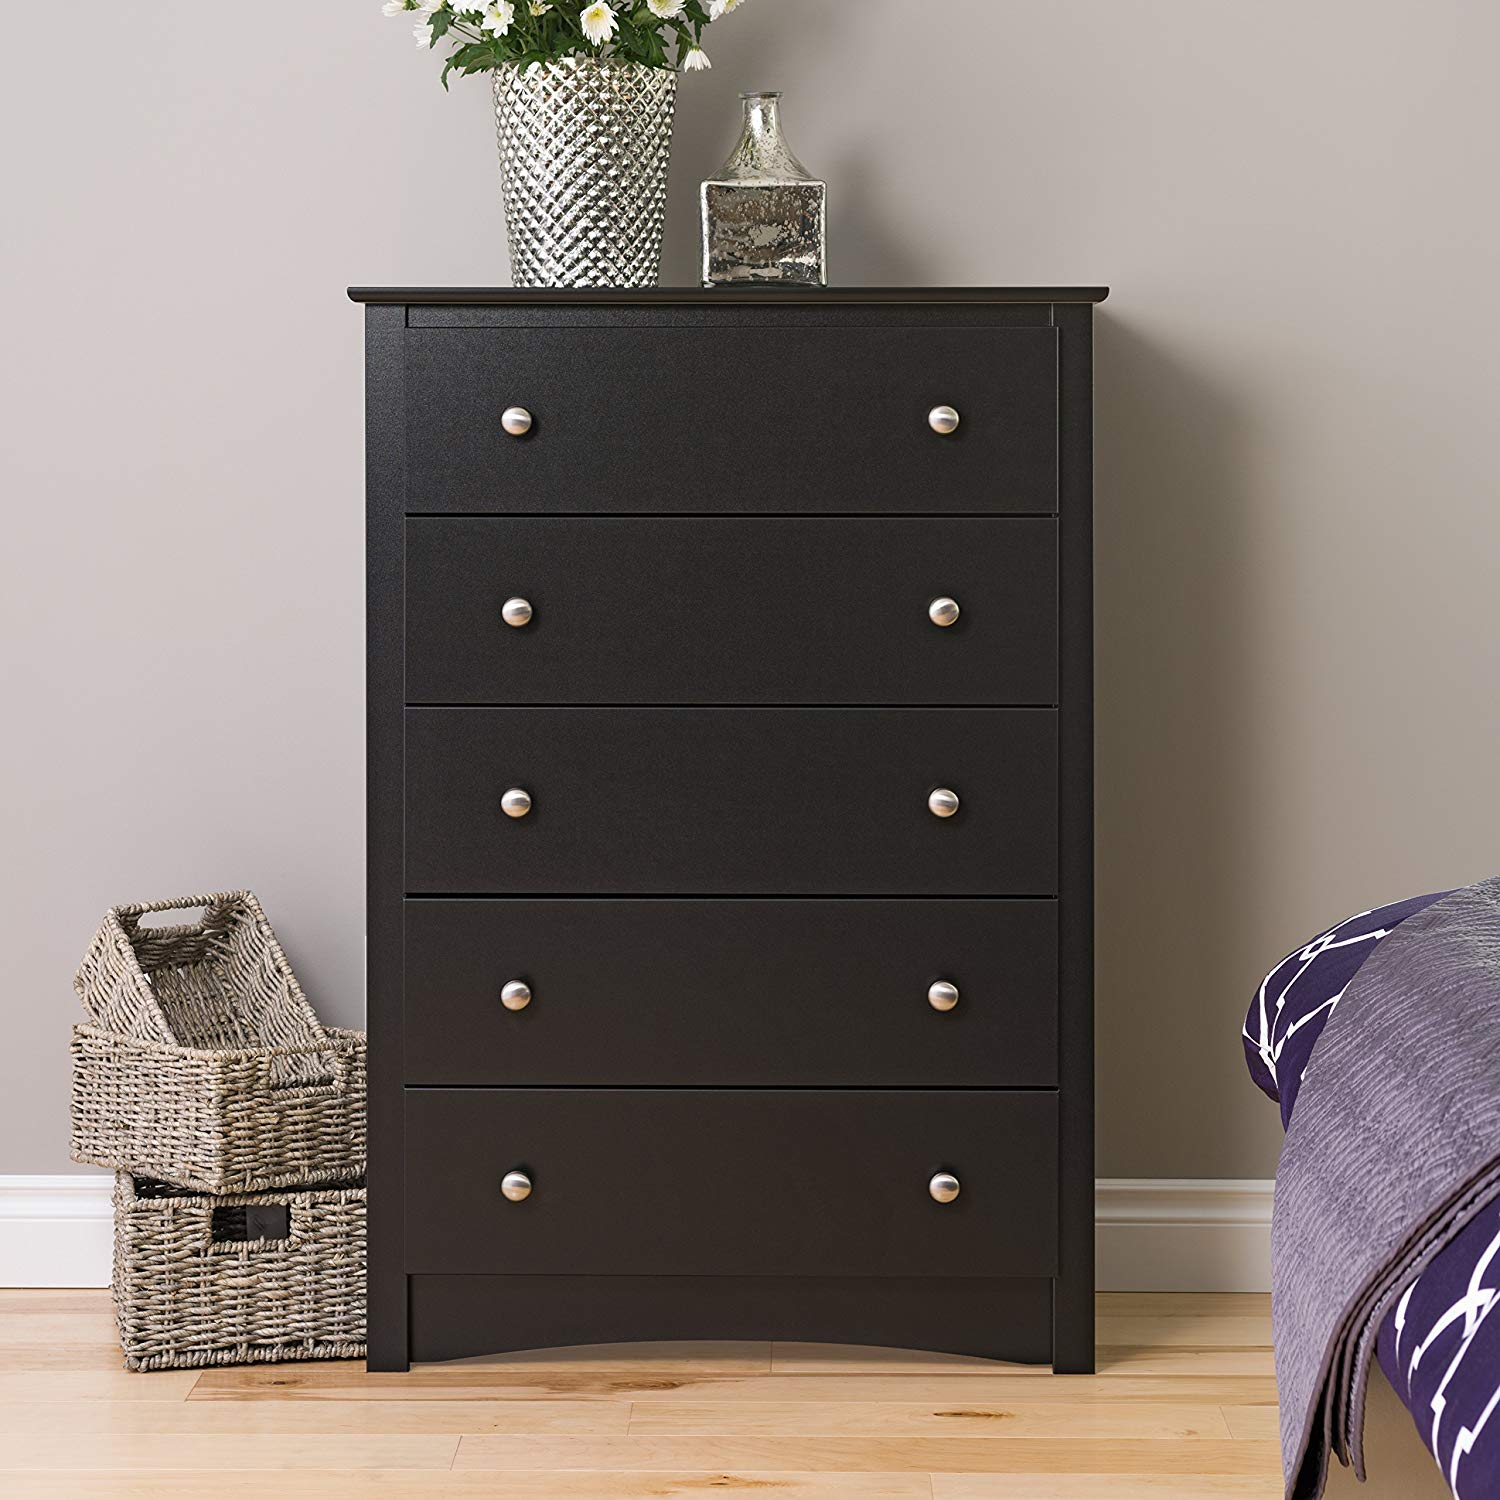 How to choose Best dresser